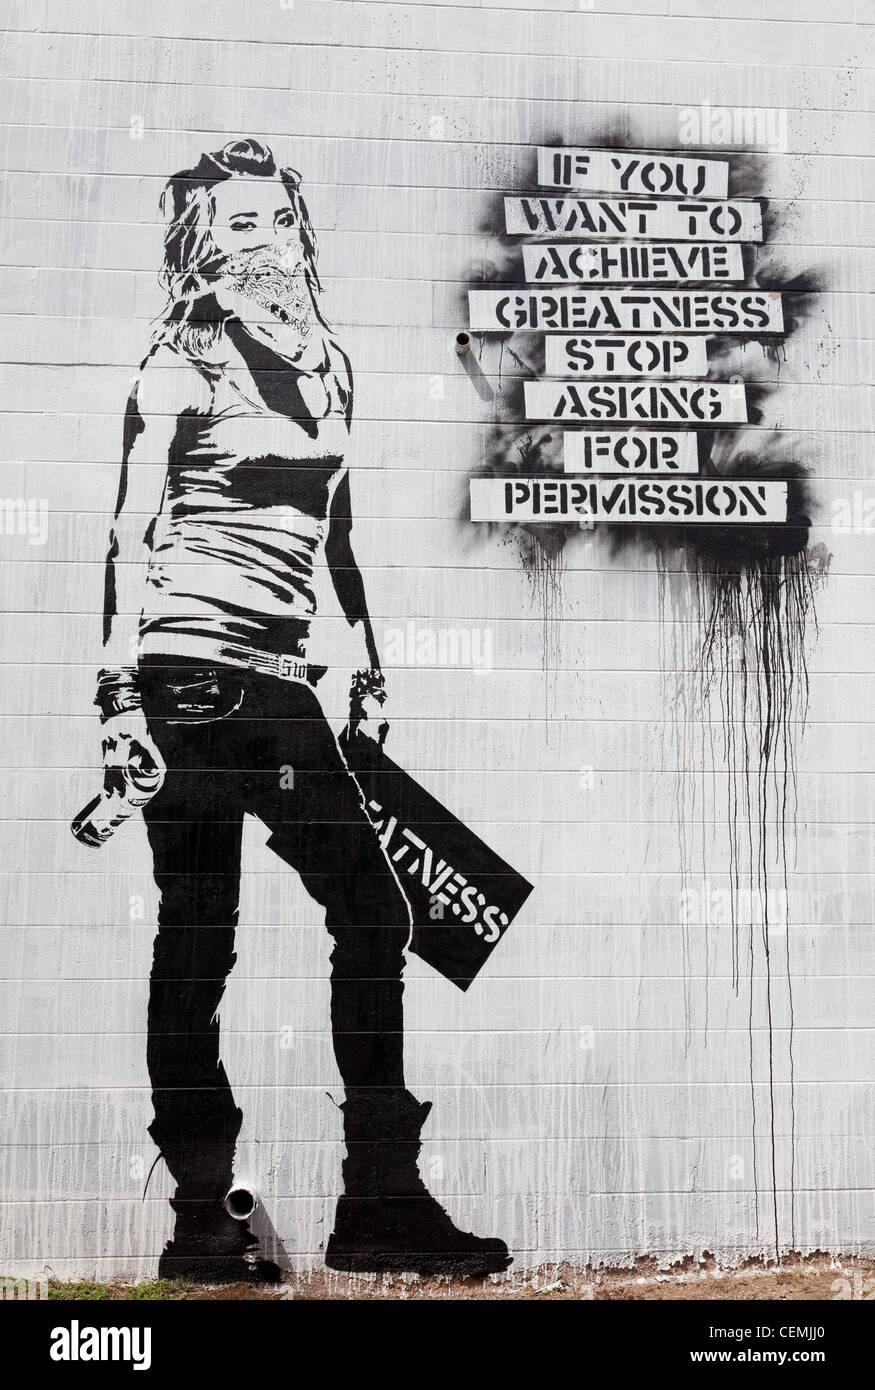 Contemporary street art, If you want to achieve greatness stop asking for permission - Stock Image